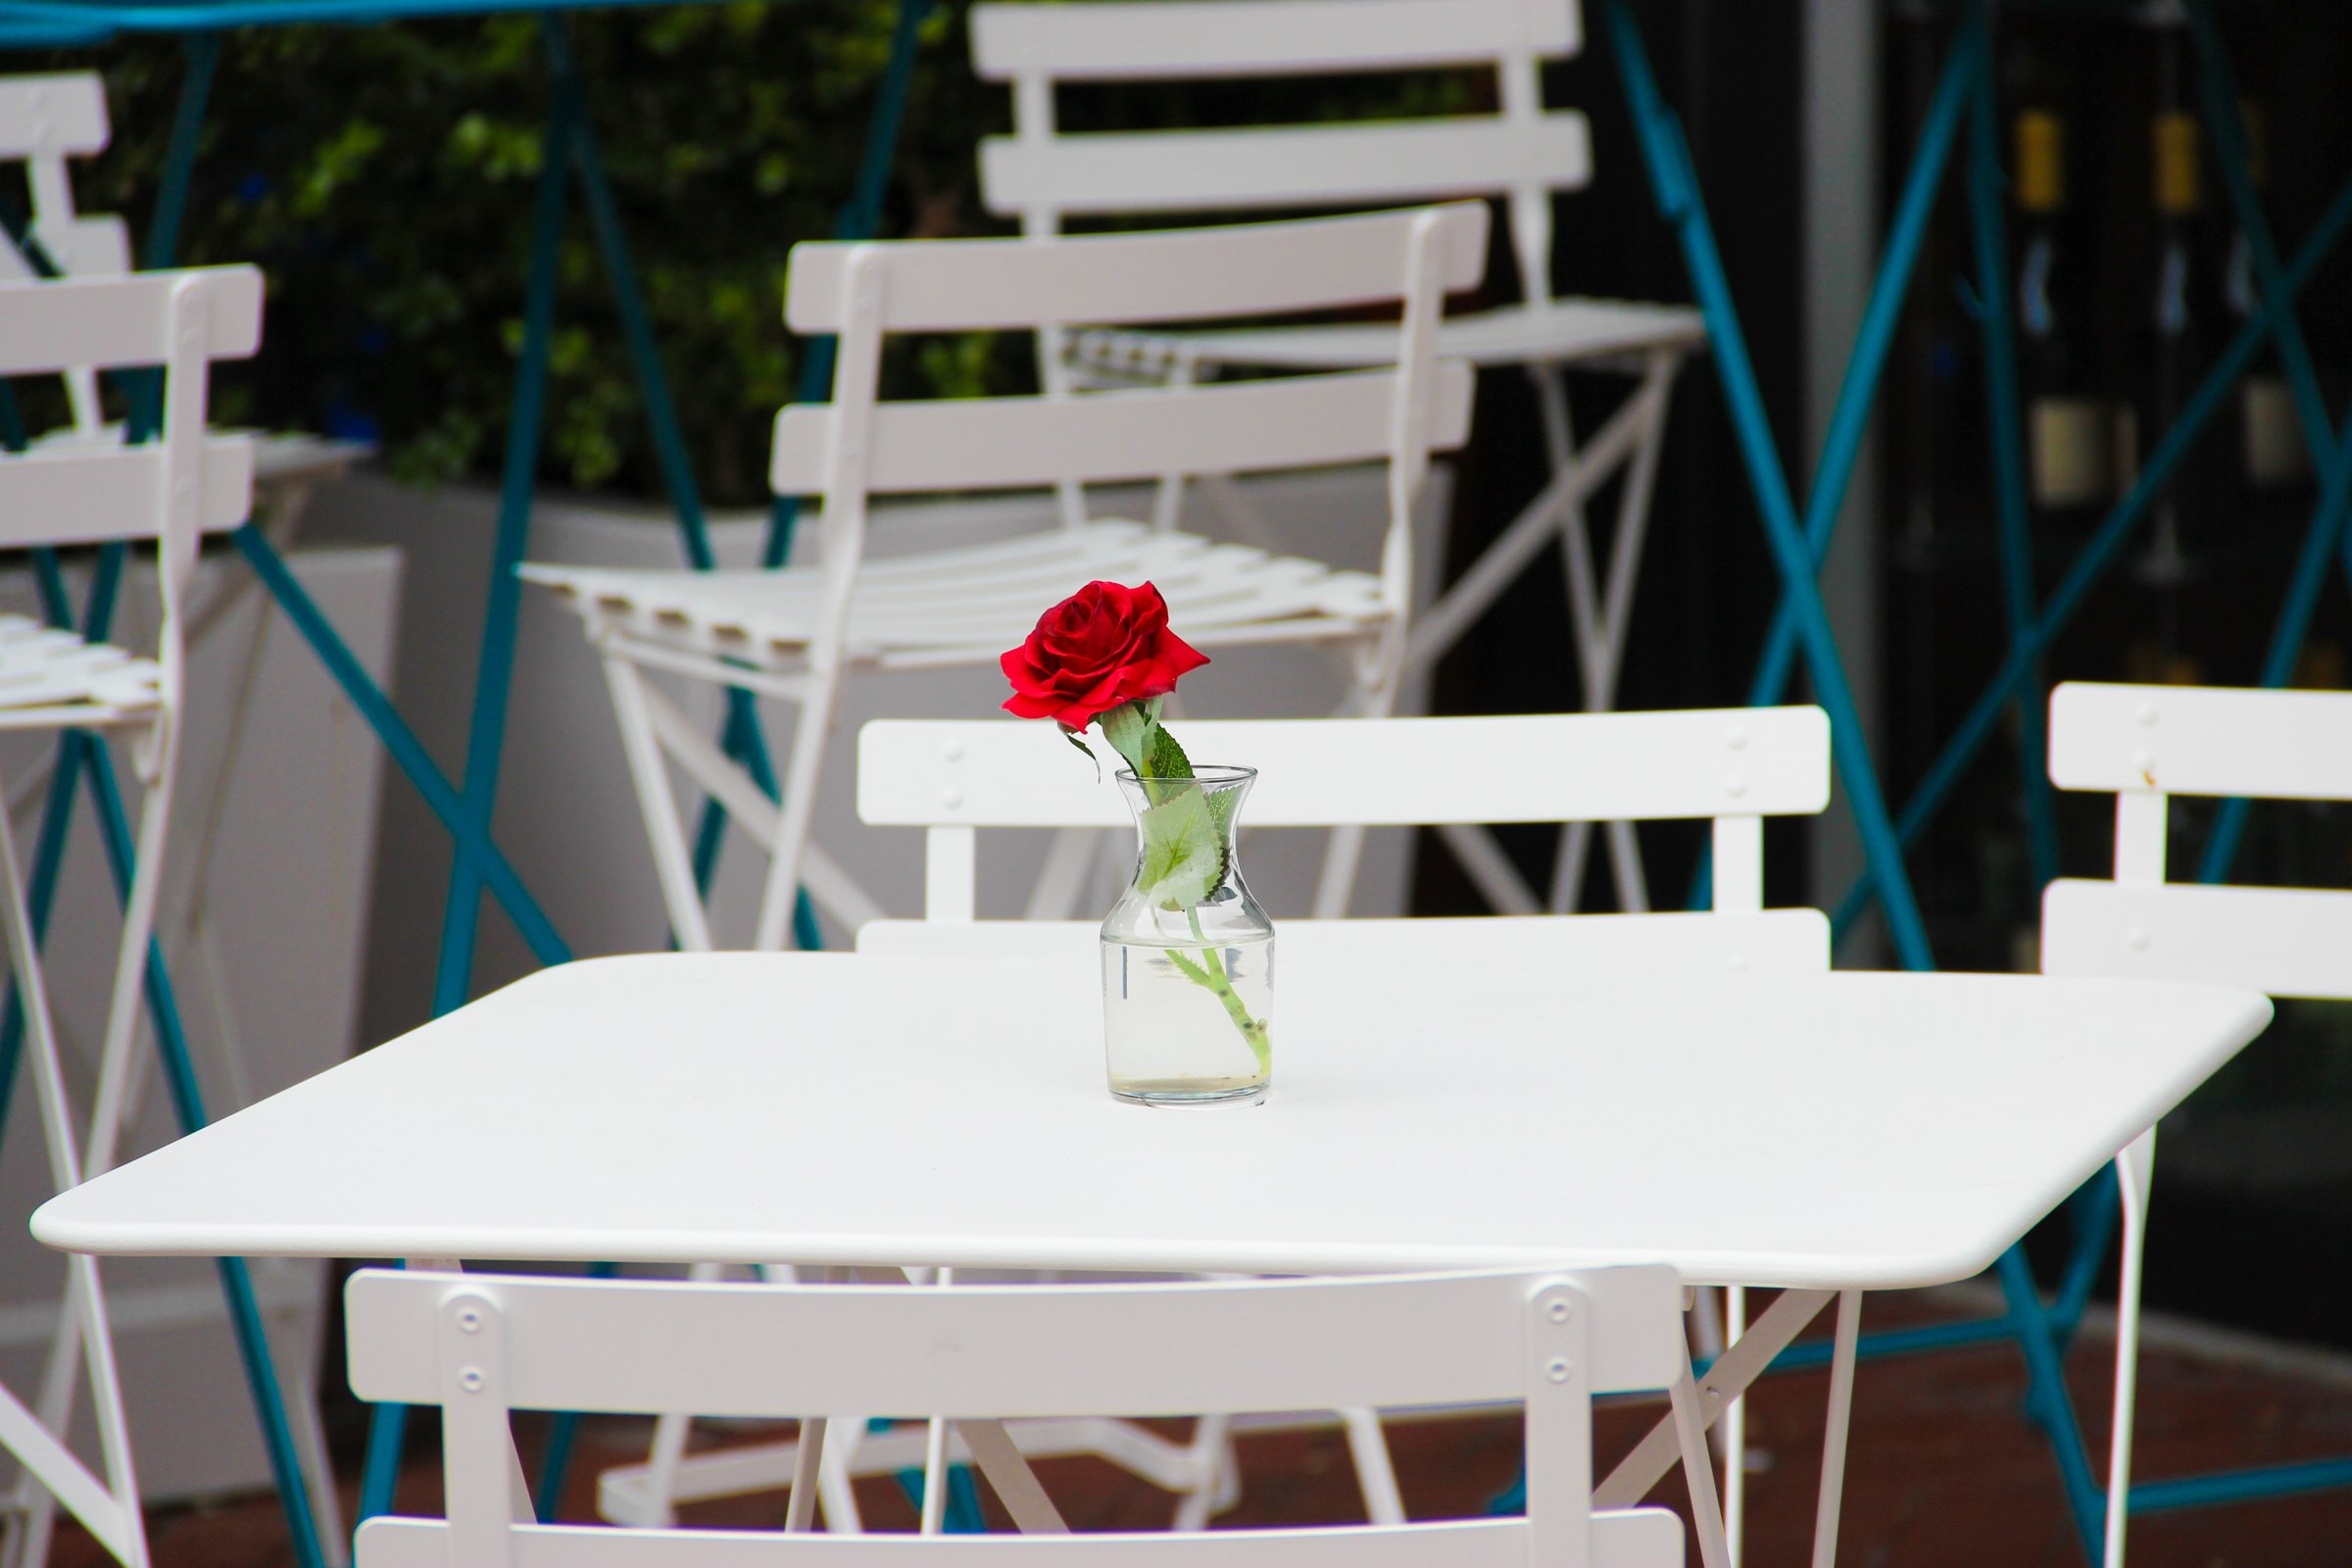 Red Rose in Vase on White Table